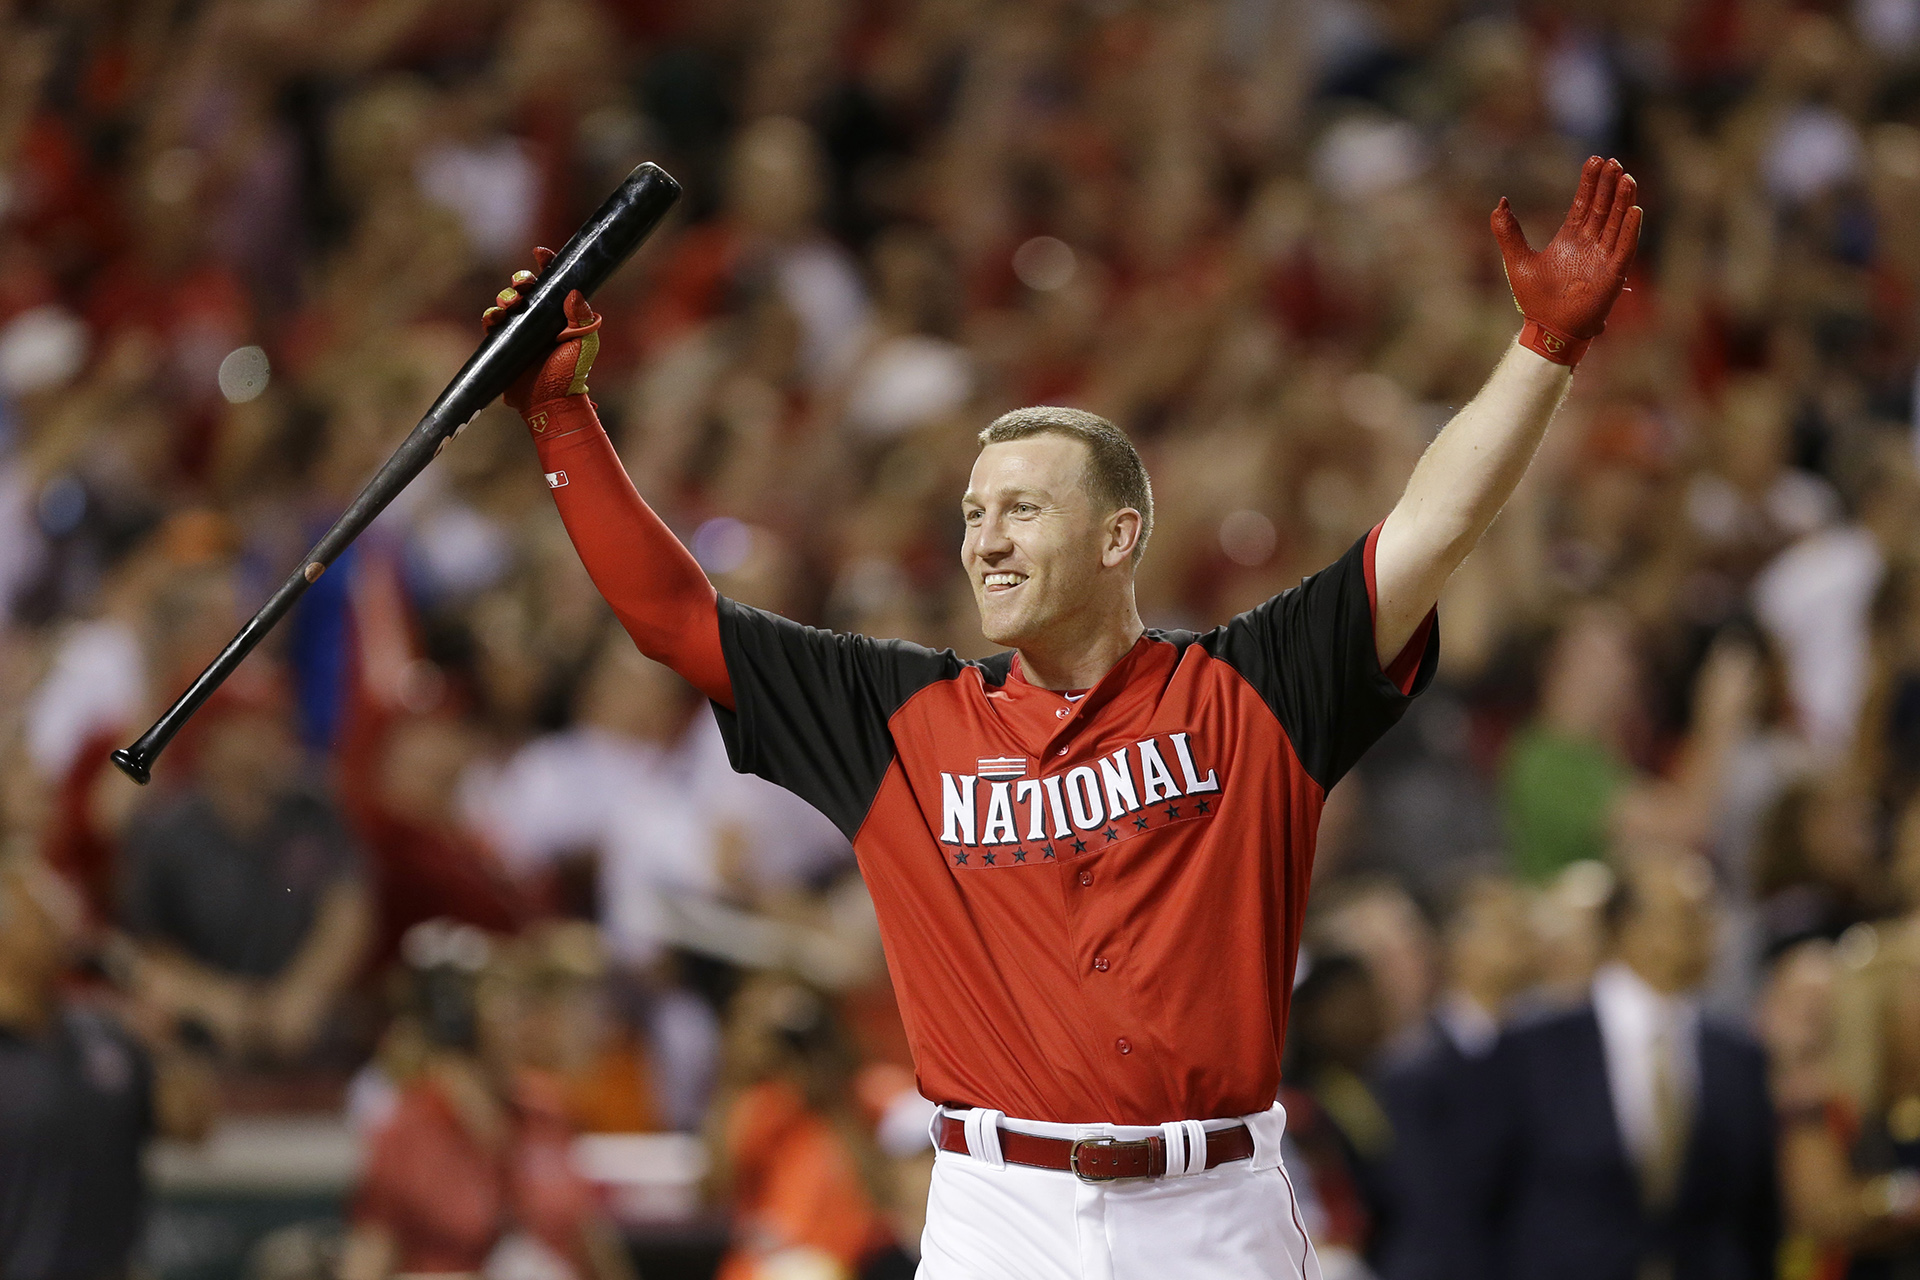 On July 13, 2015, Todd Frazier won the first-ever Home Run Derby where players were timed in their at-bats and outs were not recorded.